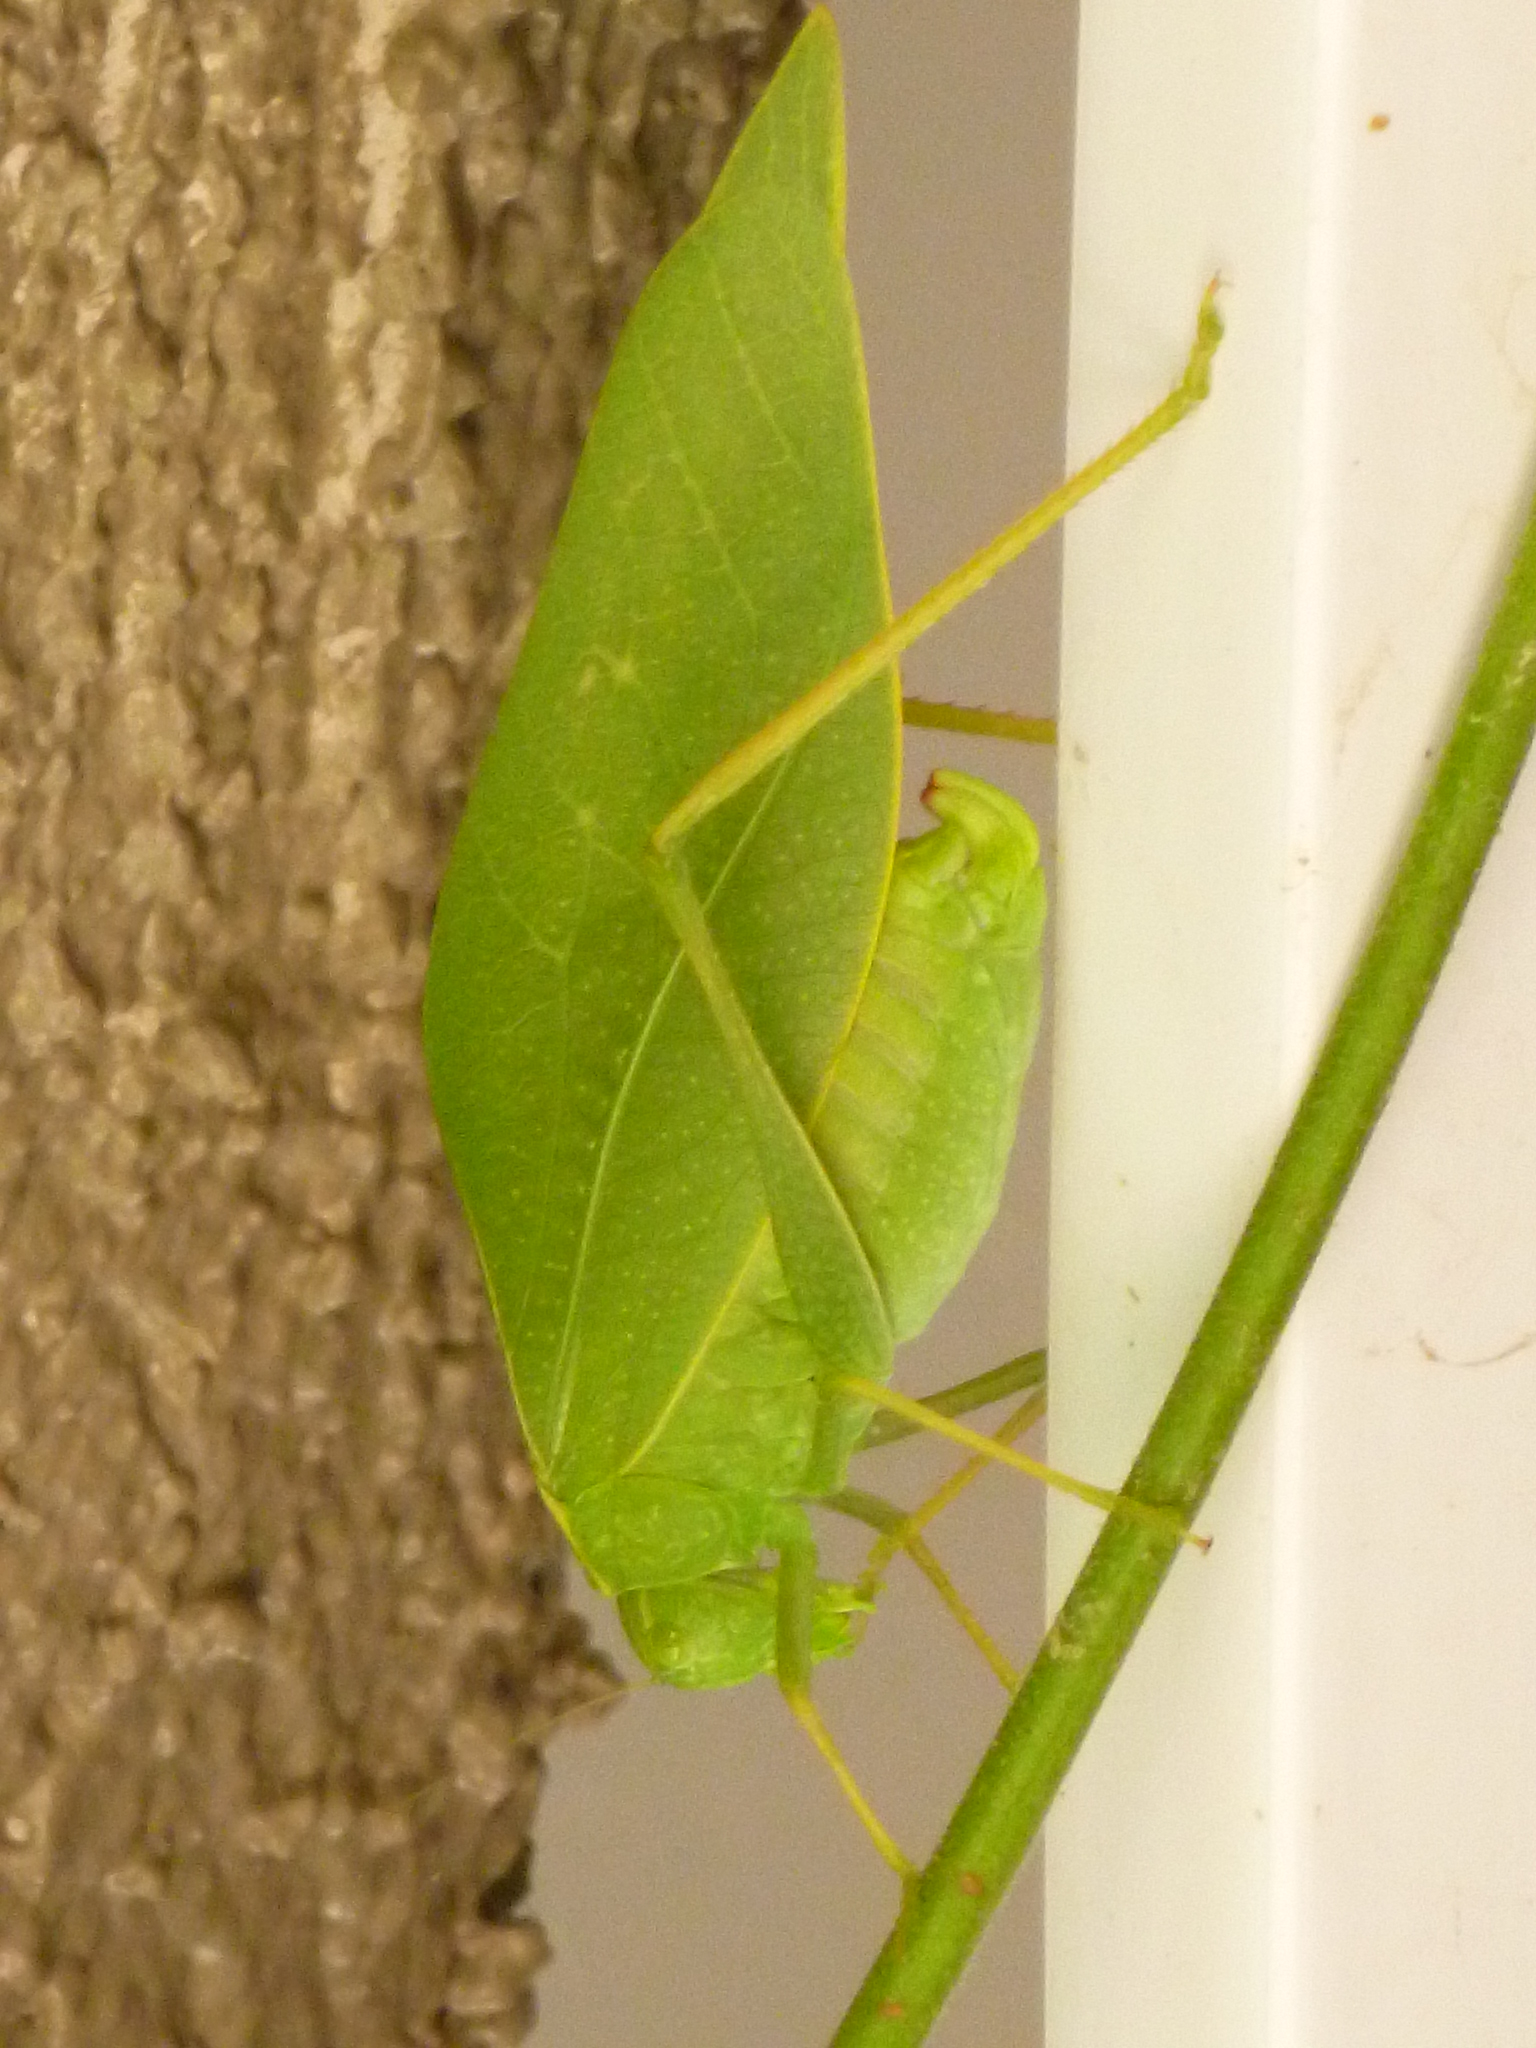 What Does A Green Leaf Bug Eat What Insect Looks Like A Green Leaf